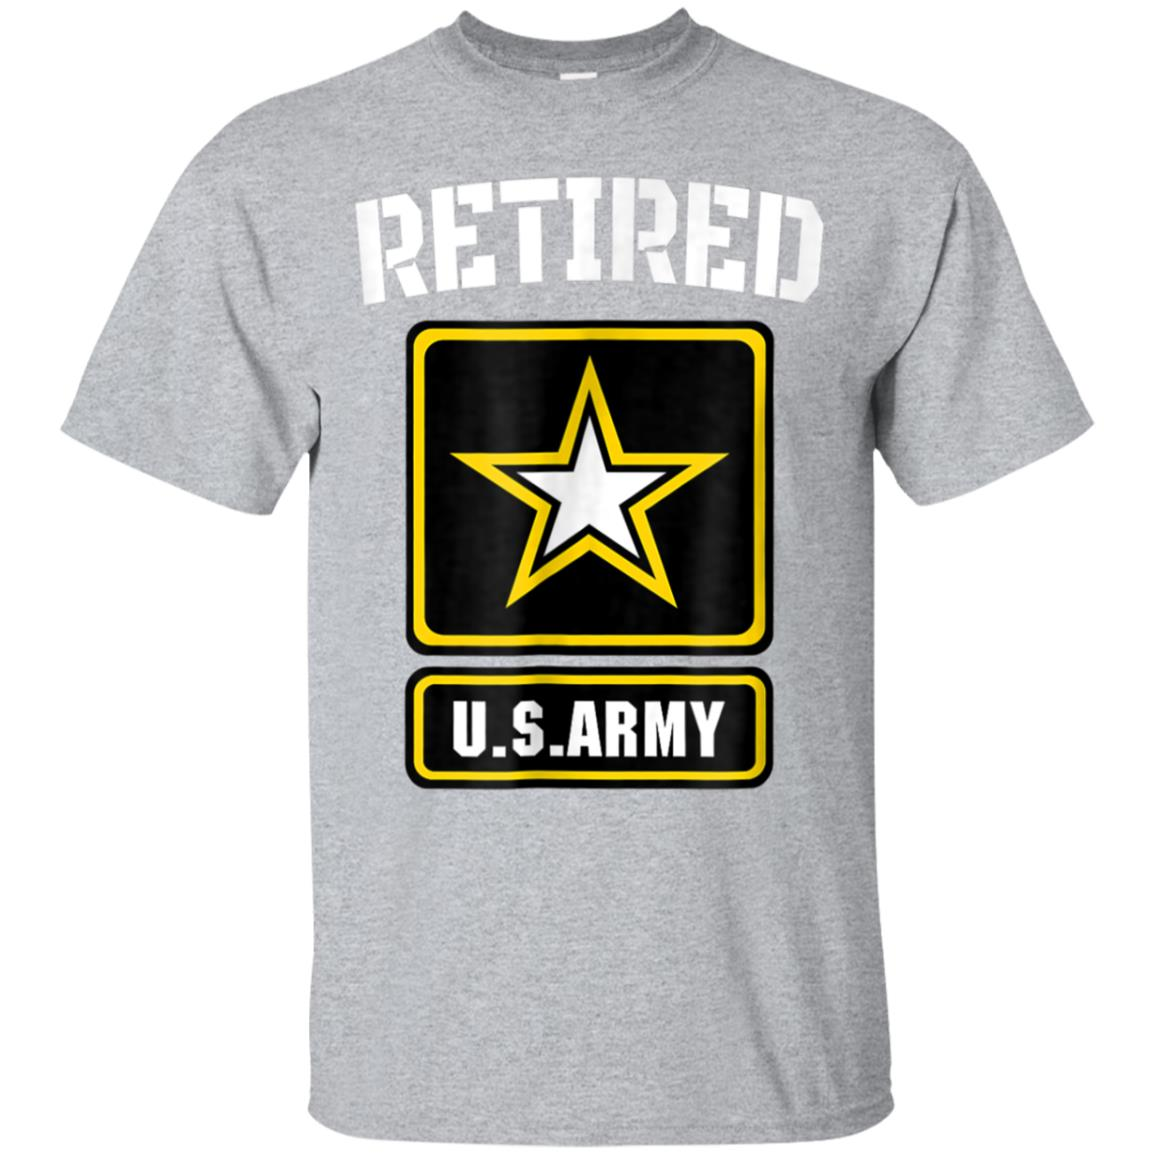 Retired US Army Veteran T-shirt Gift For Veteran Day 99promocode